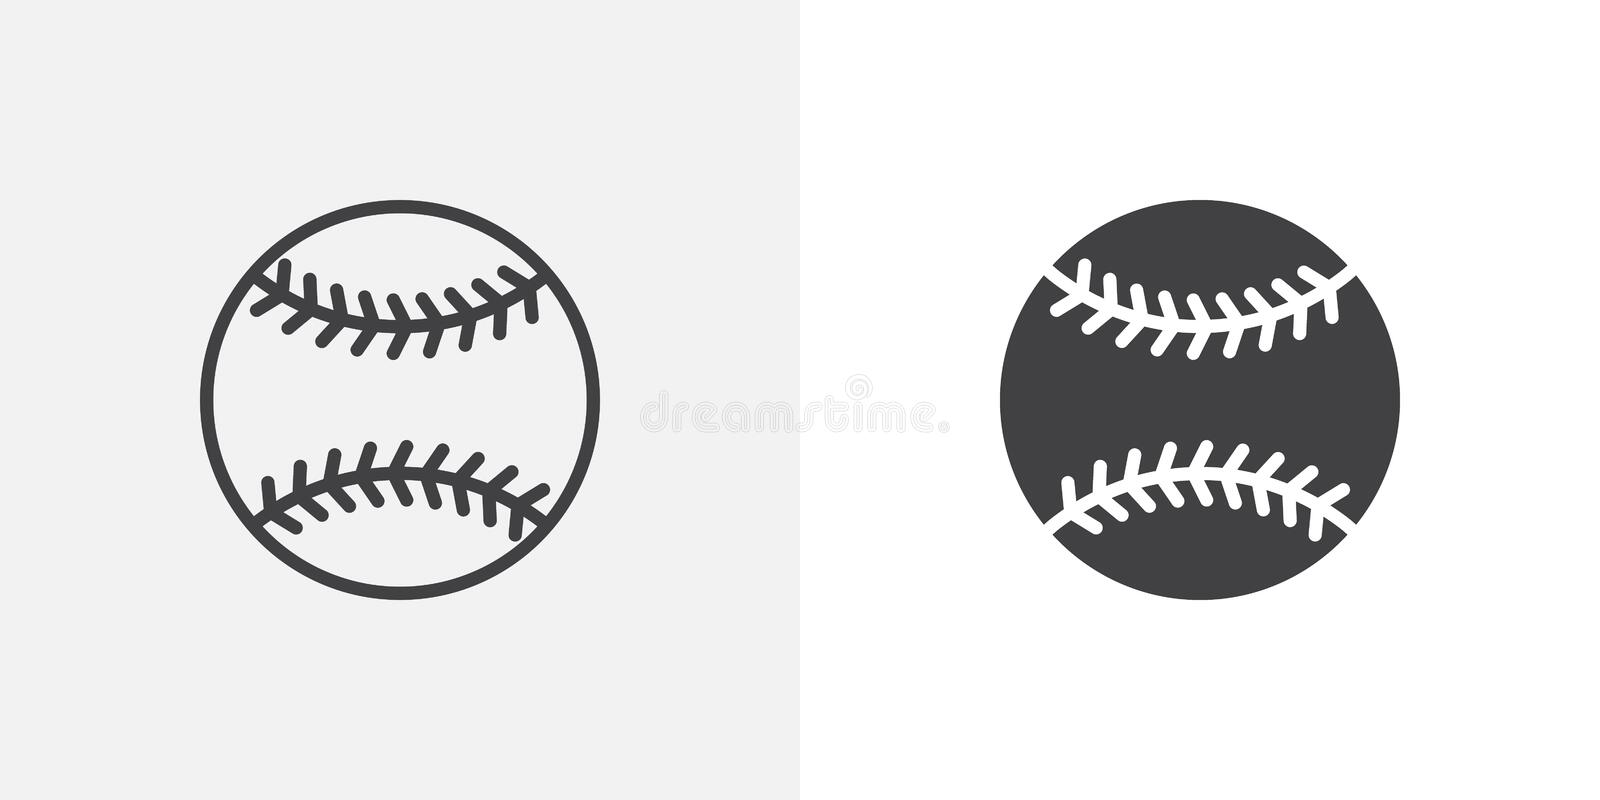 Baseball ball icon royalty free illustration